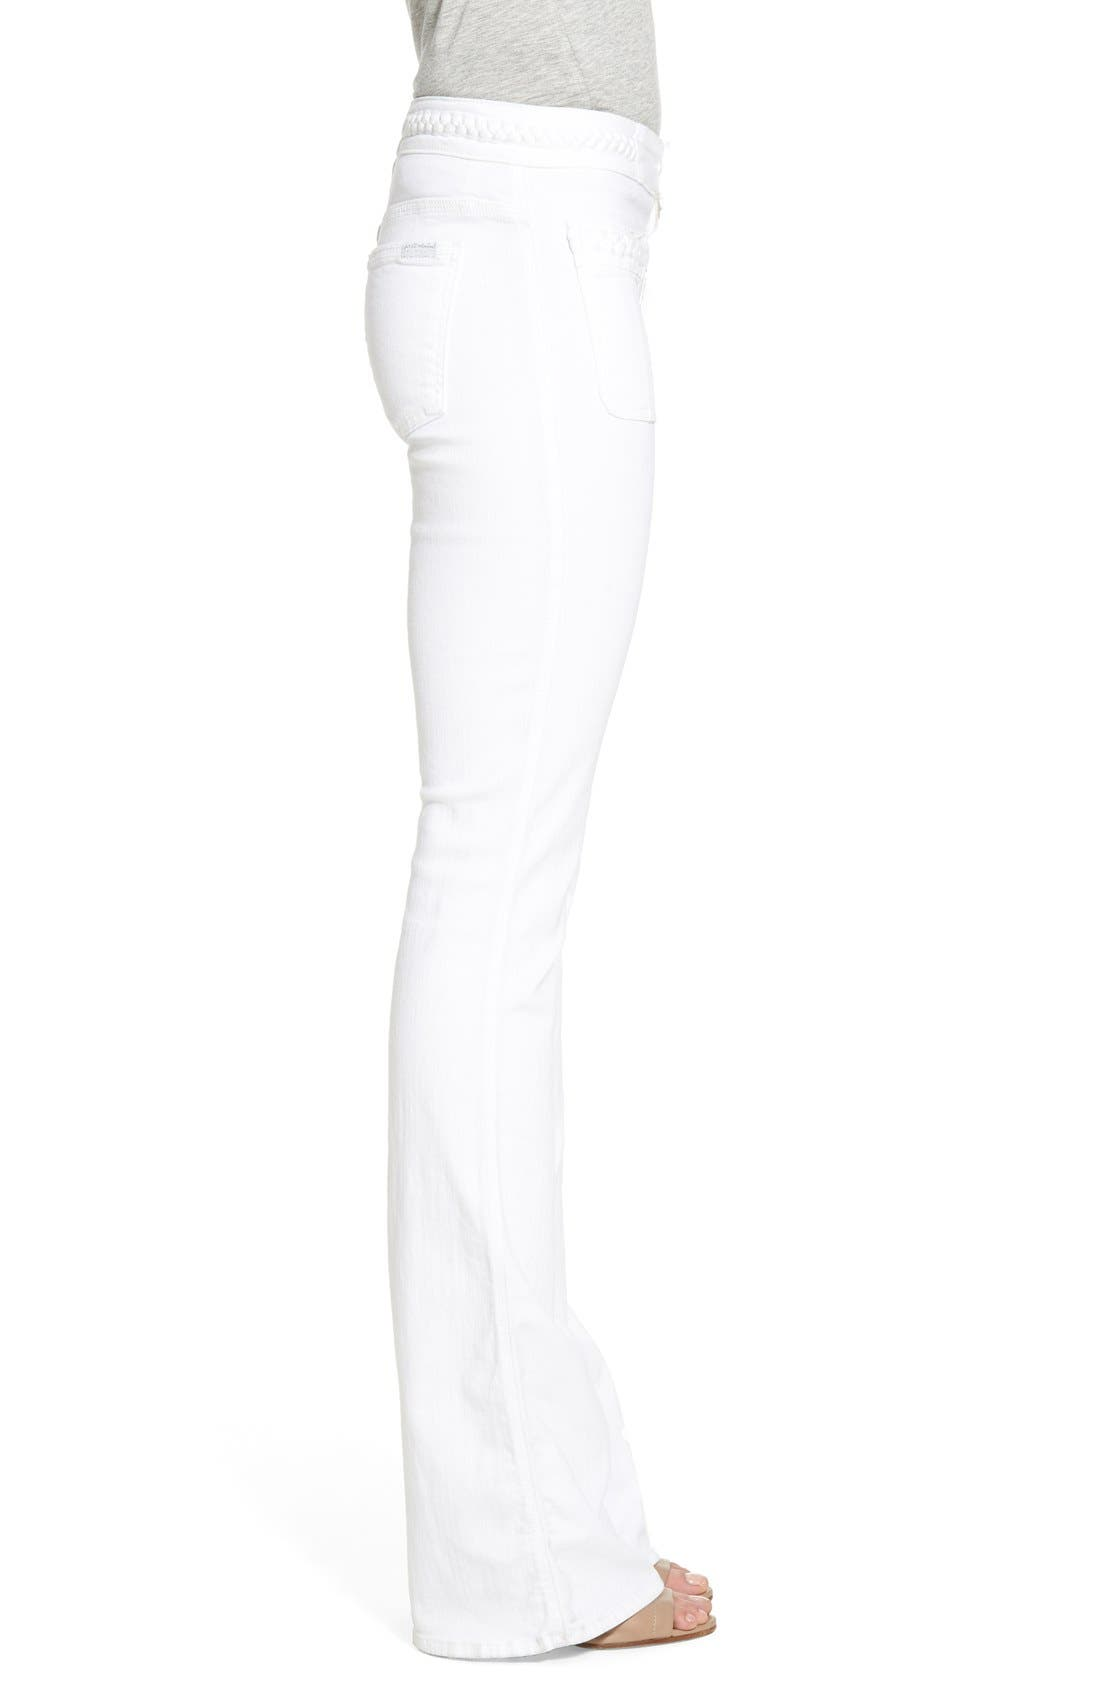 Alternate Image 3  - 7 For All Mankind® High Rise Braided Trim Flare Jeans (White Fashion)